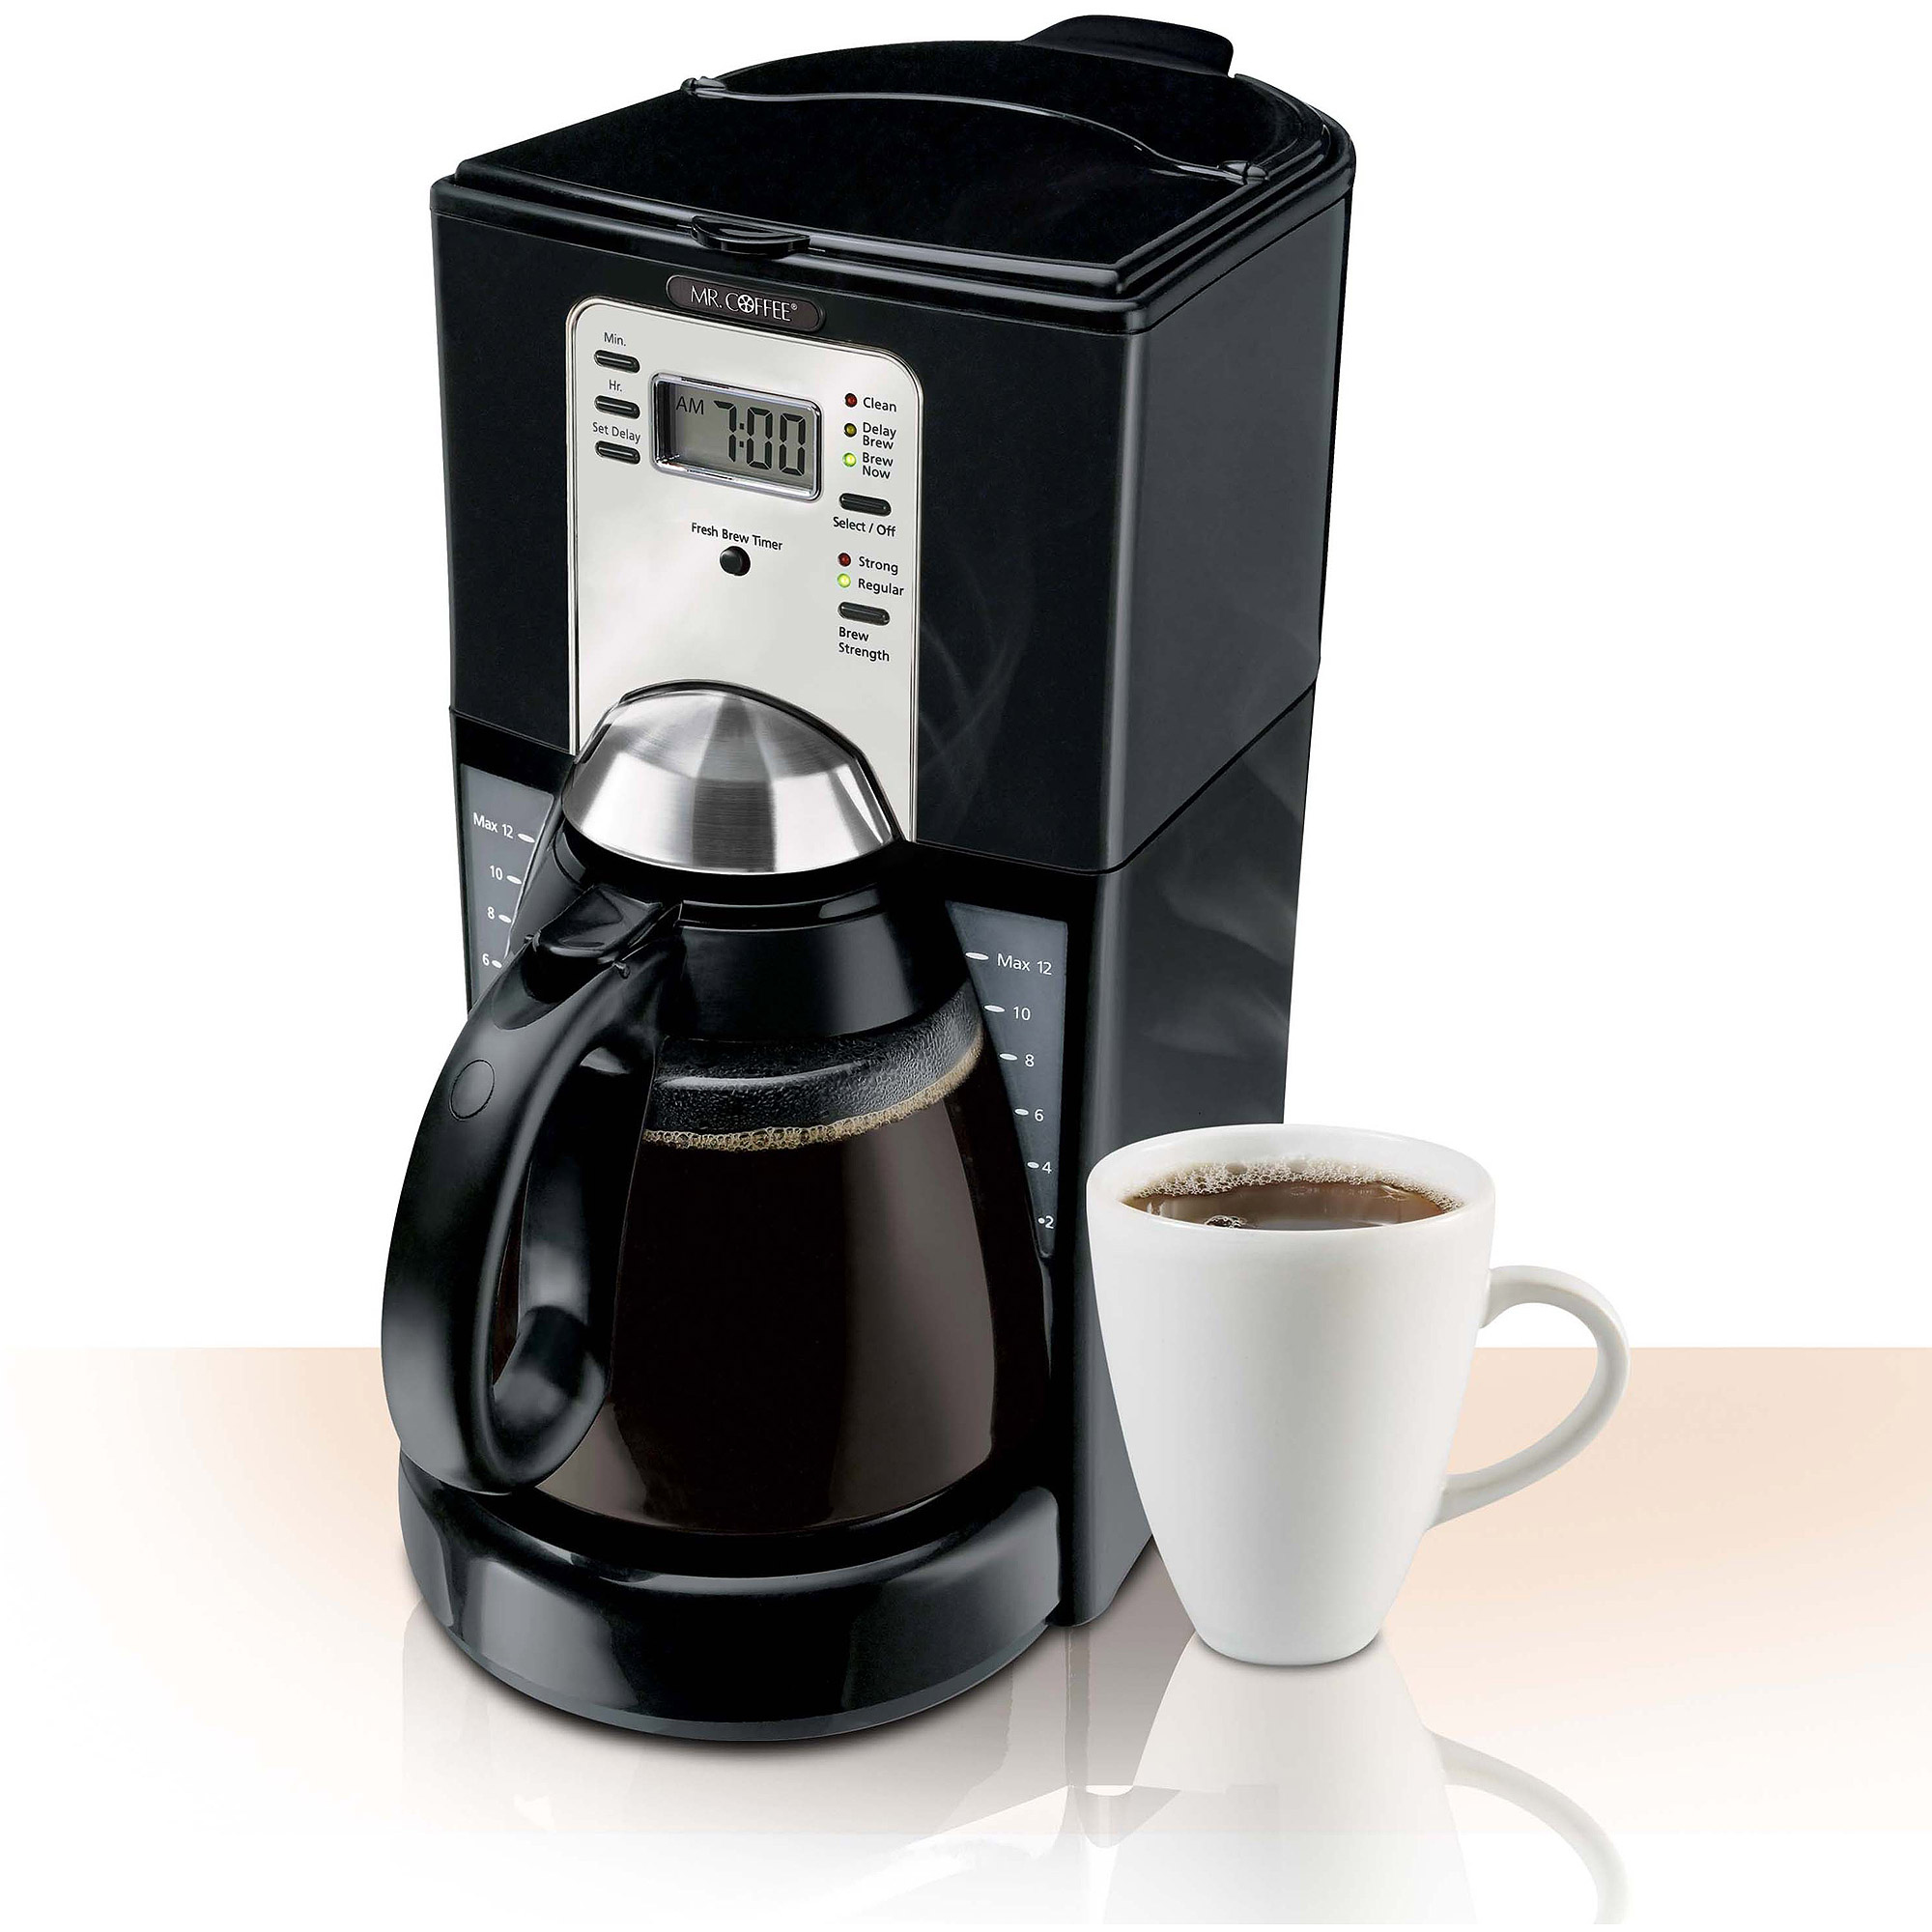 Called Bunn. This one IS made in the USA. We have used Bunns for years and have been extremely satisfied with all of them. We use Folgers Classic and Master Chef coffee from Walmart, which are pretty coarsely ground, probably.